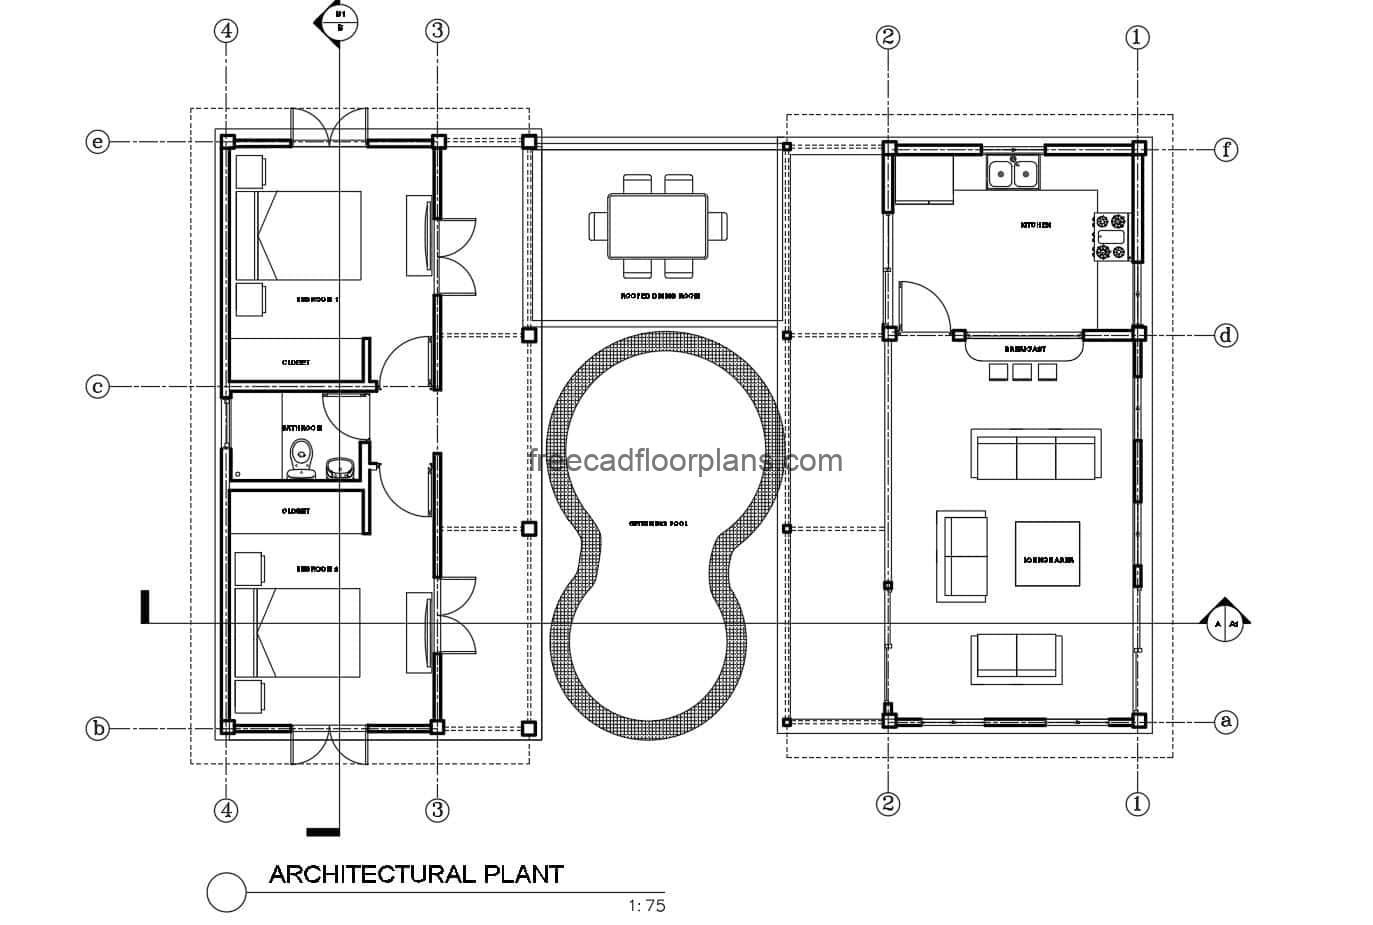 Low cost country house set of plans in Autocad format